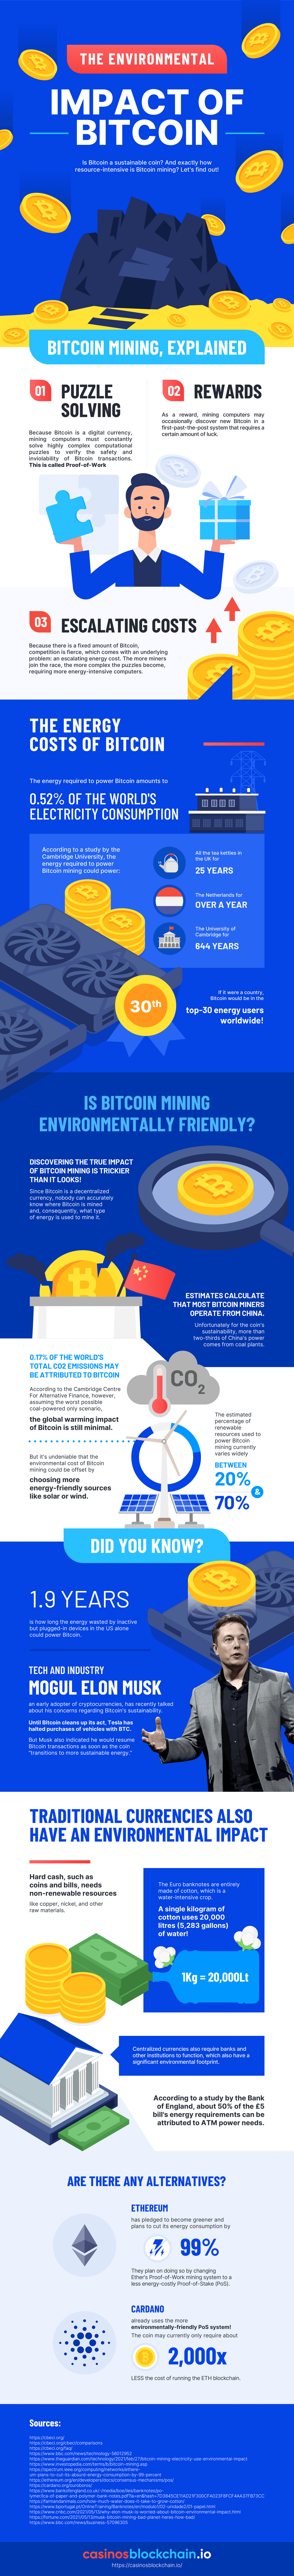 Infographic about the environmental impact of Bitcoin